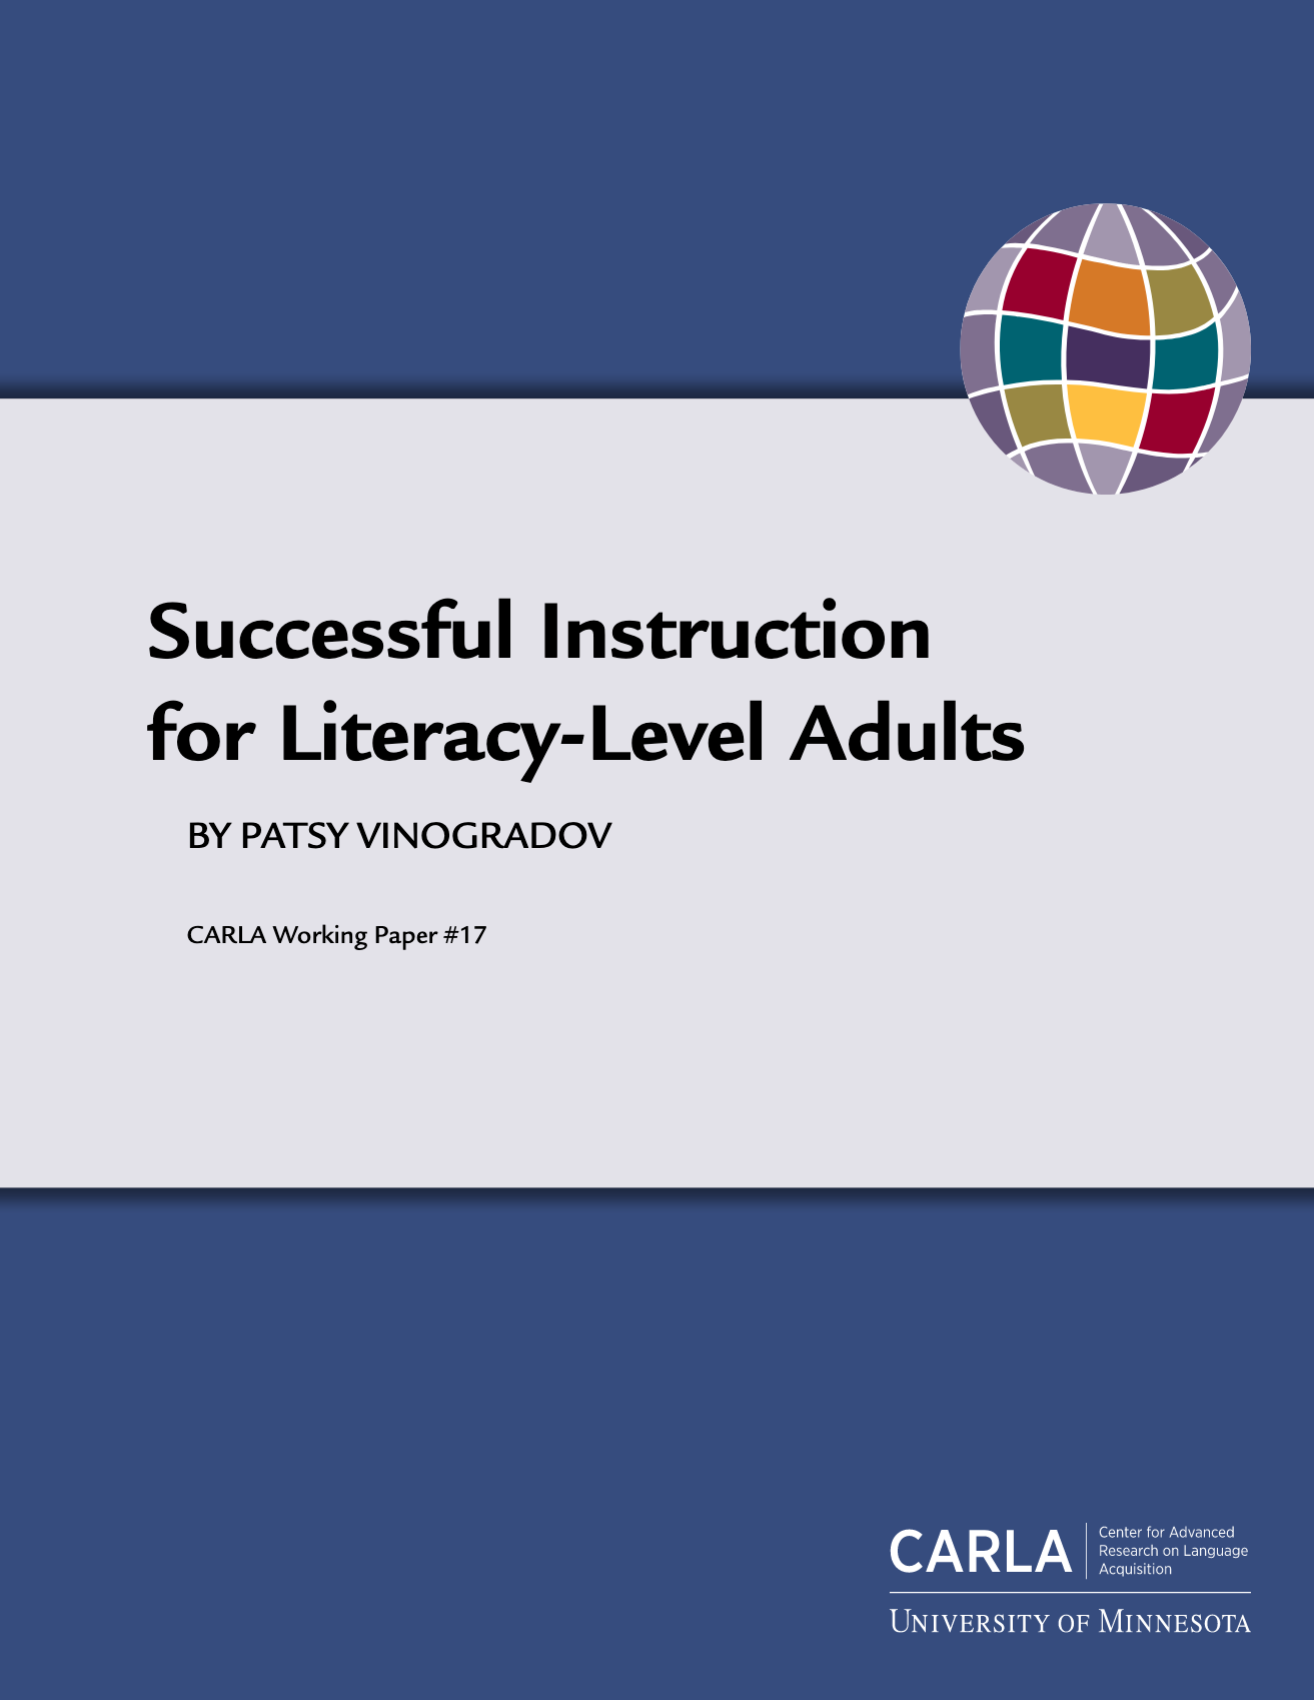 Successful Instruction for Literacy-Level Adults